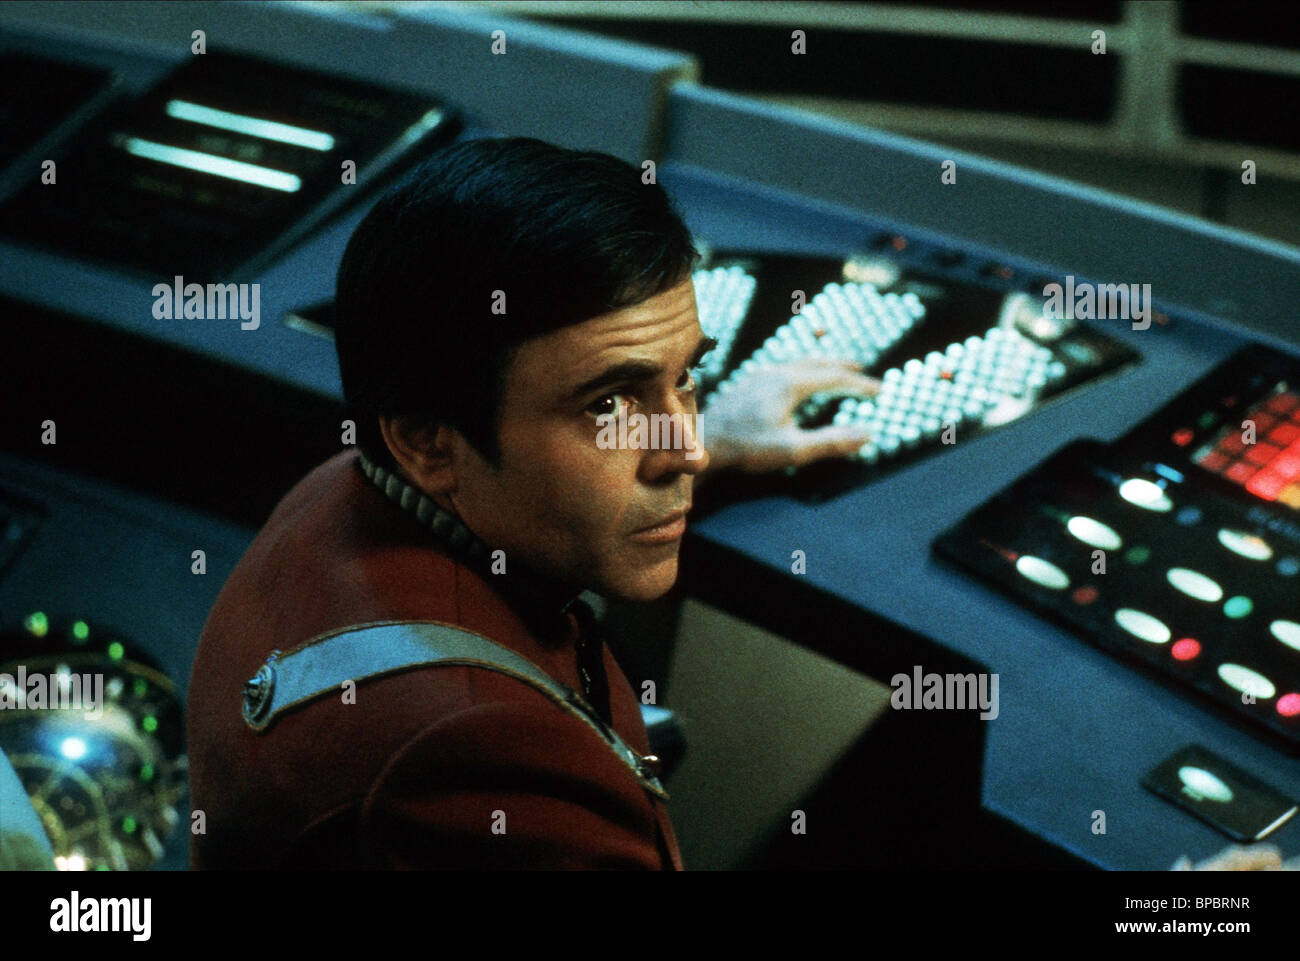 WALTER KOENIG STAR TREK III: THE SEARCH FOR SPOCK (1984) - Stock Image